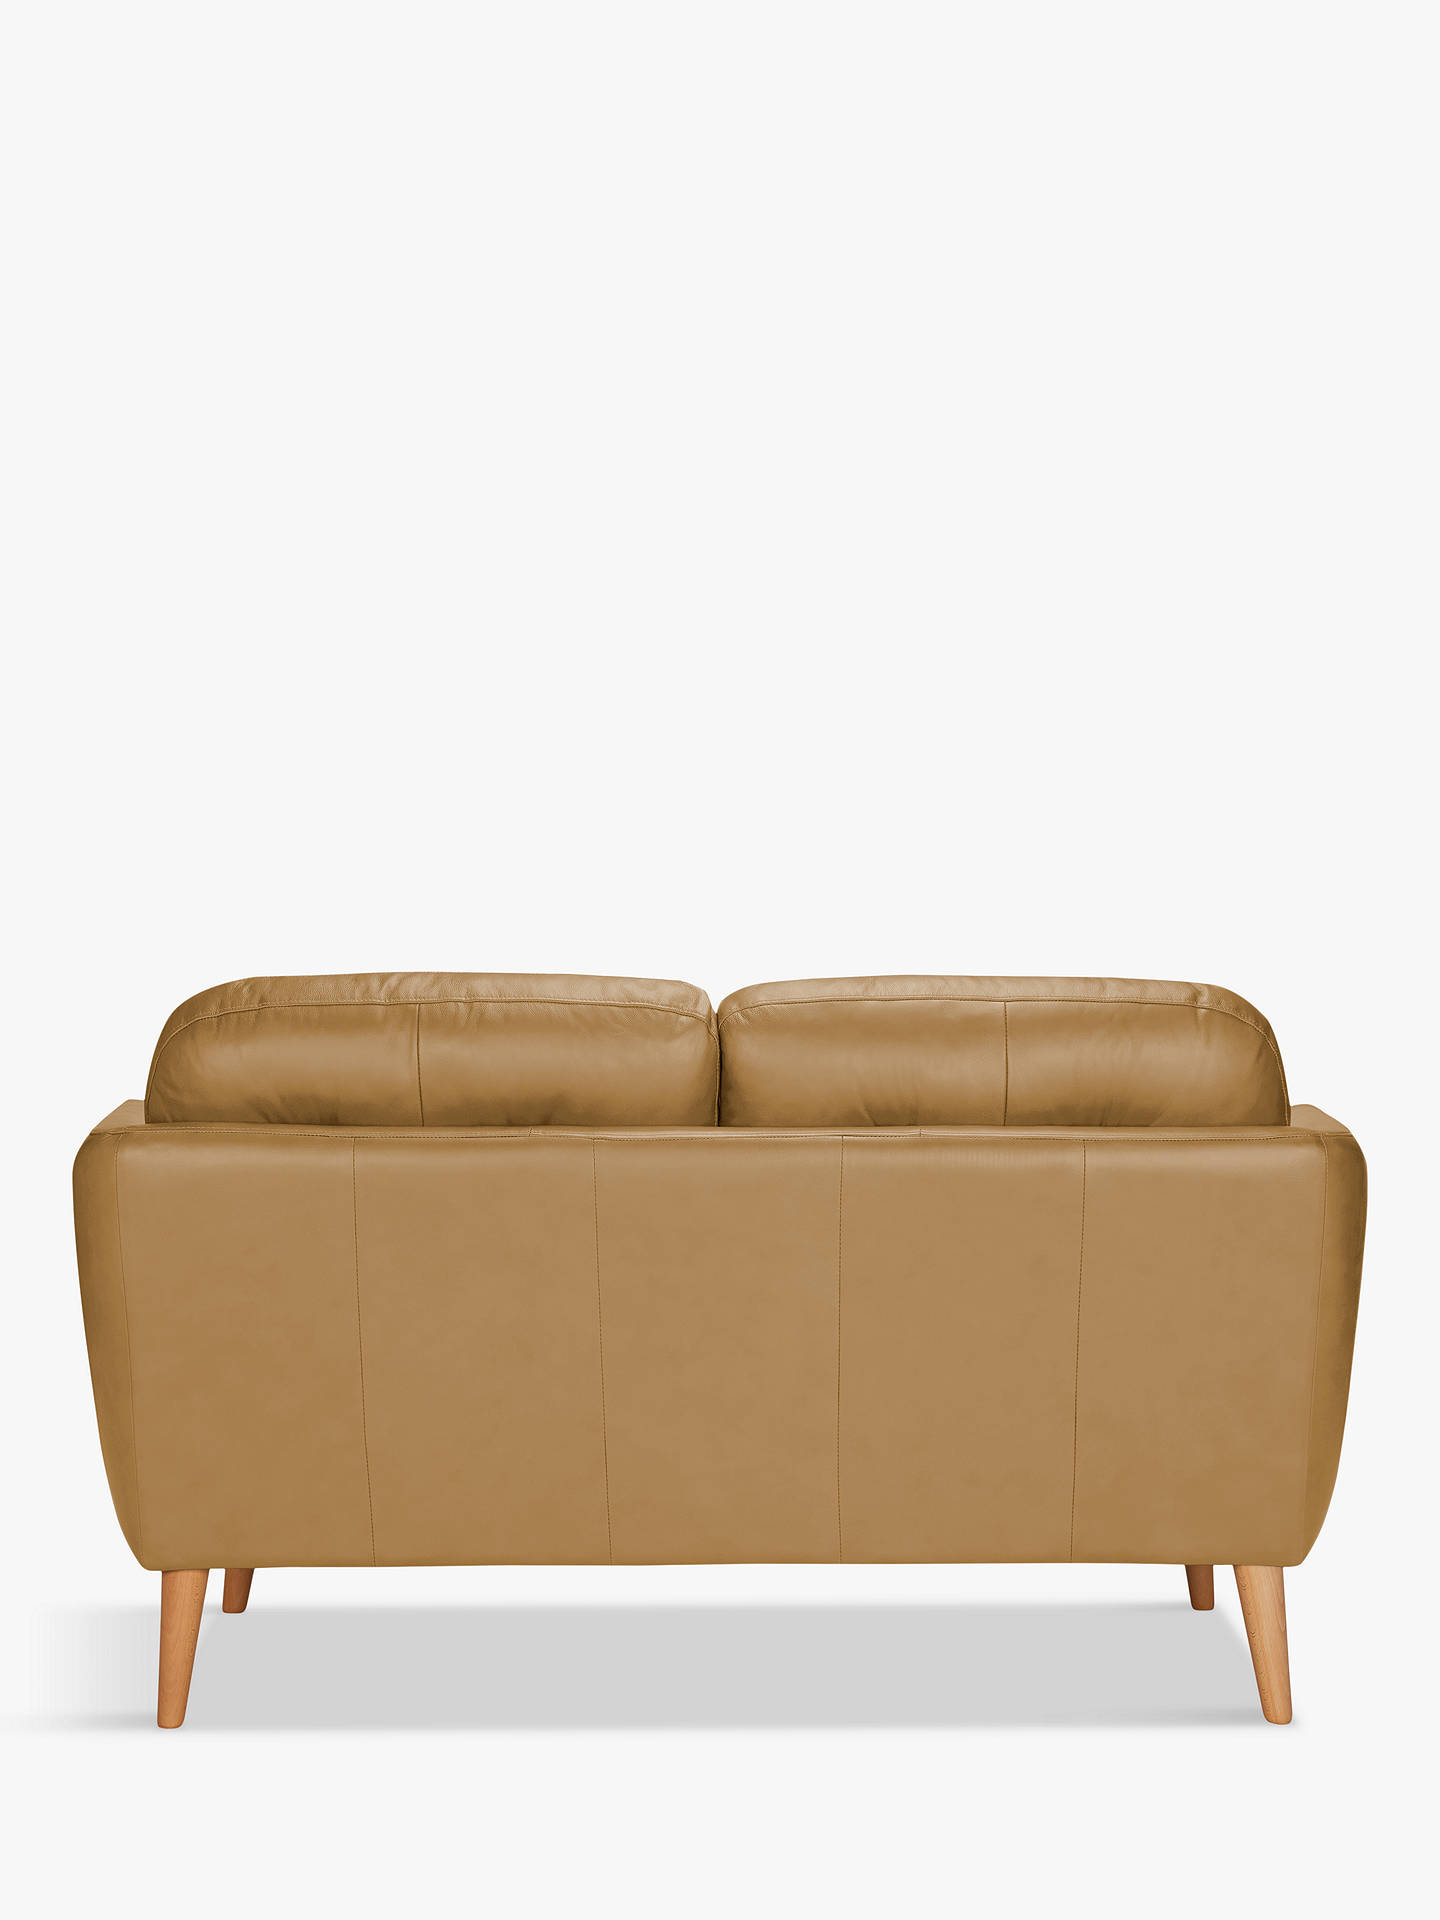 Buy House by John Lewis Arlo Small 2 Seater Leather Sofa, Dark Leg, Sellvagio Parchment Online at johnlewis.com